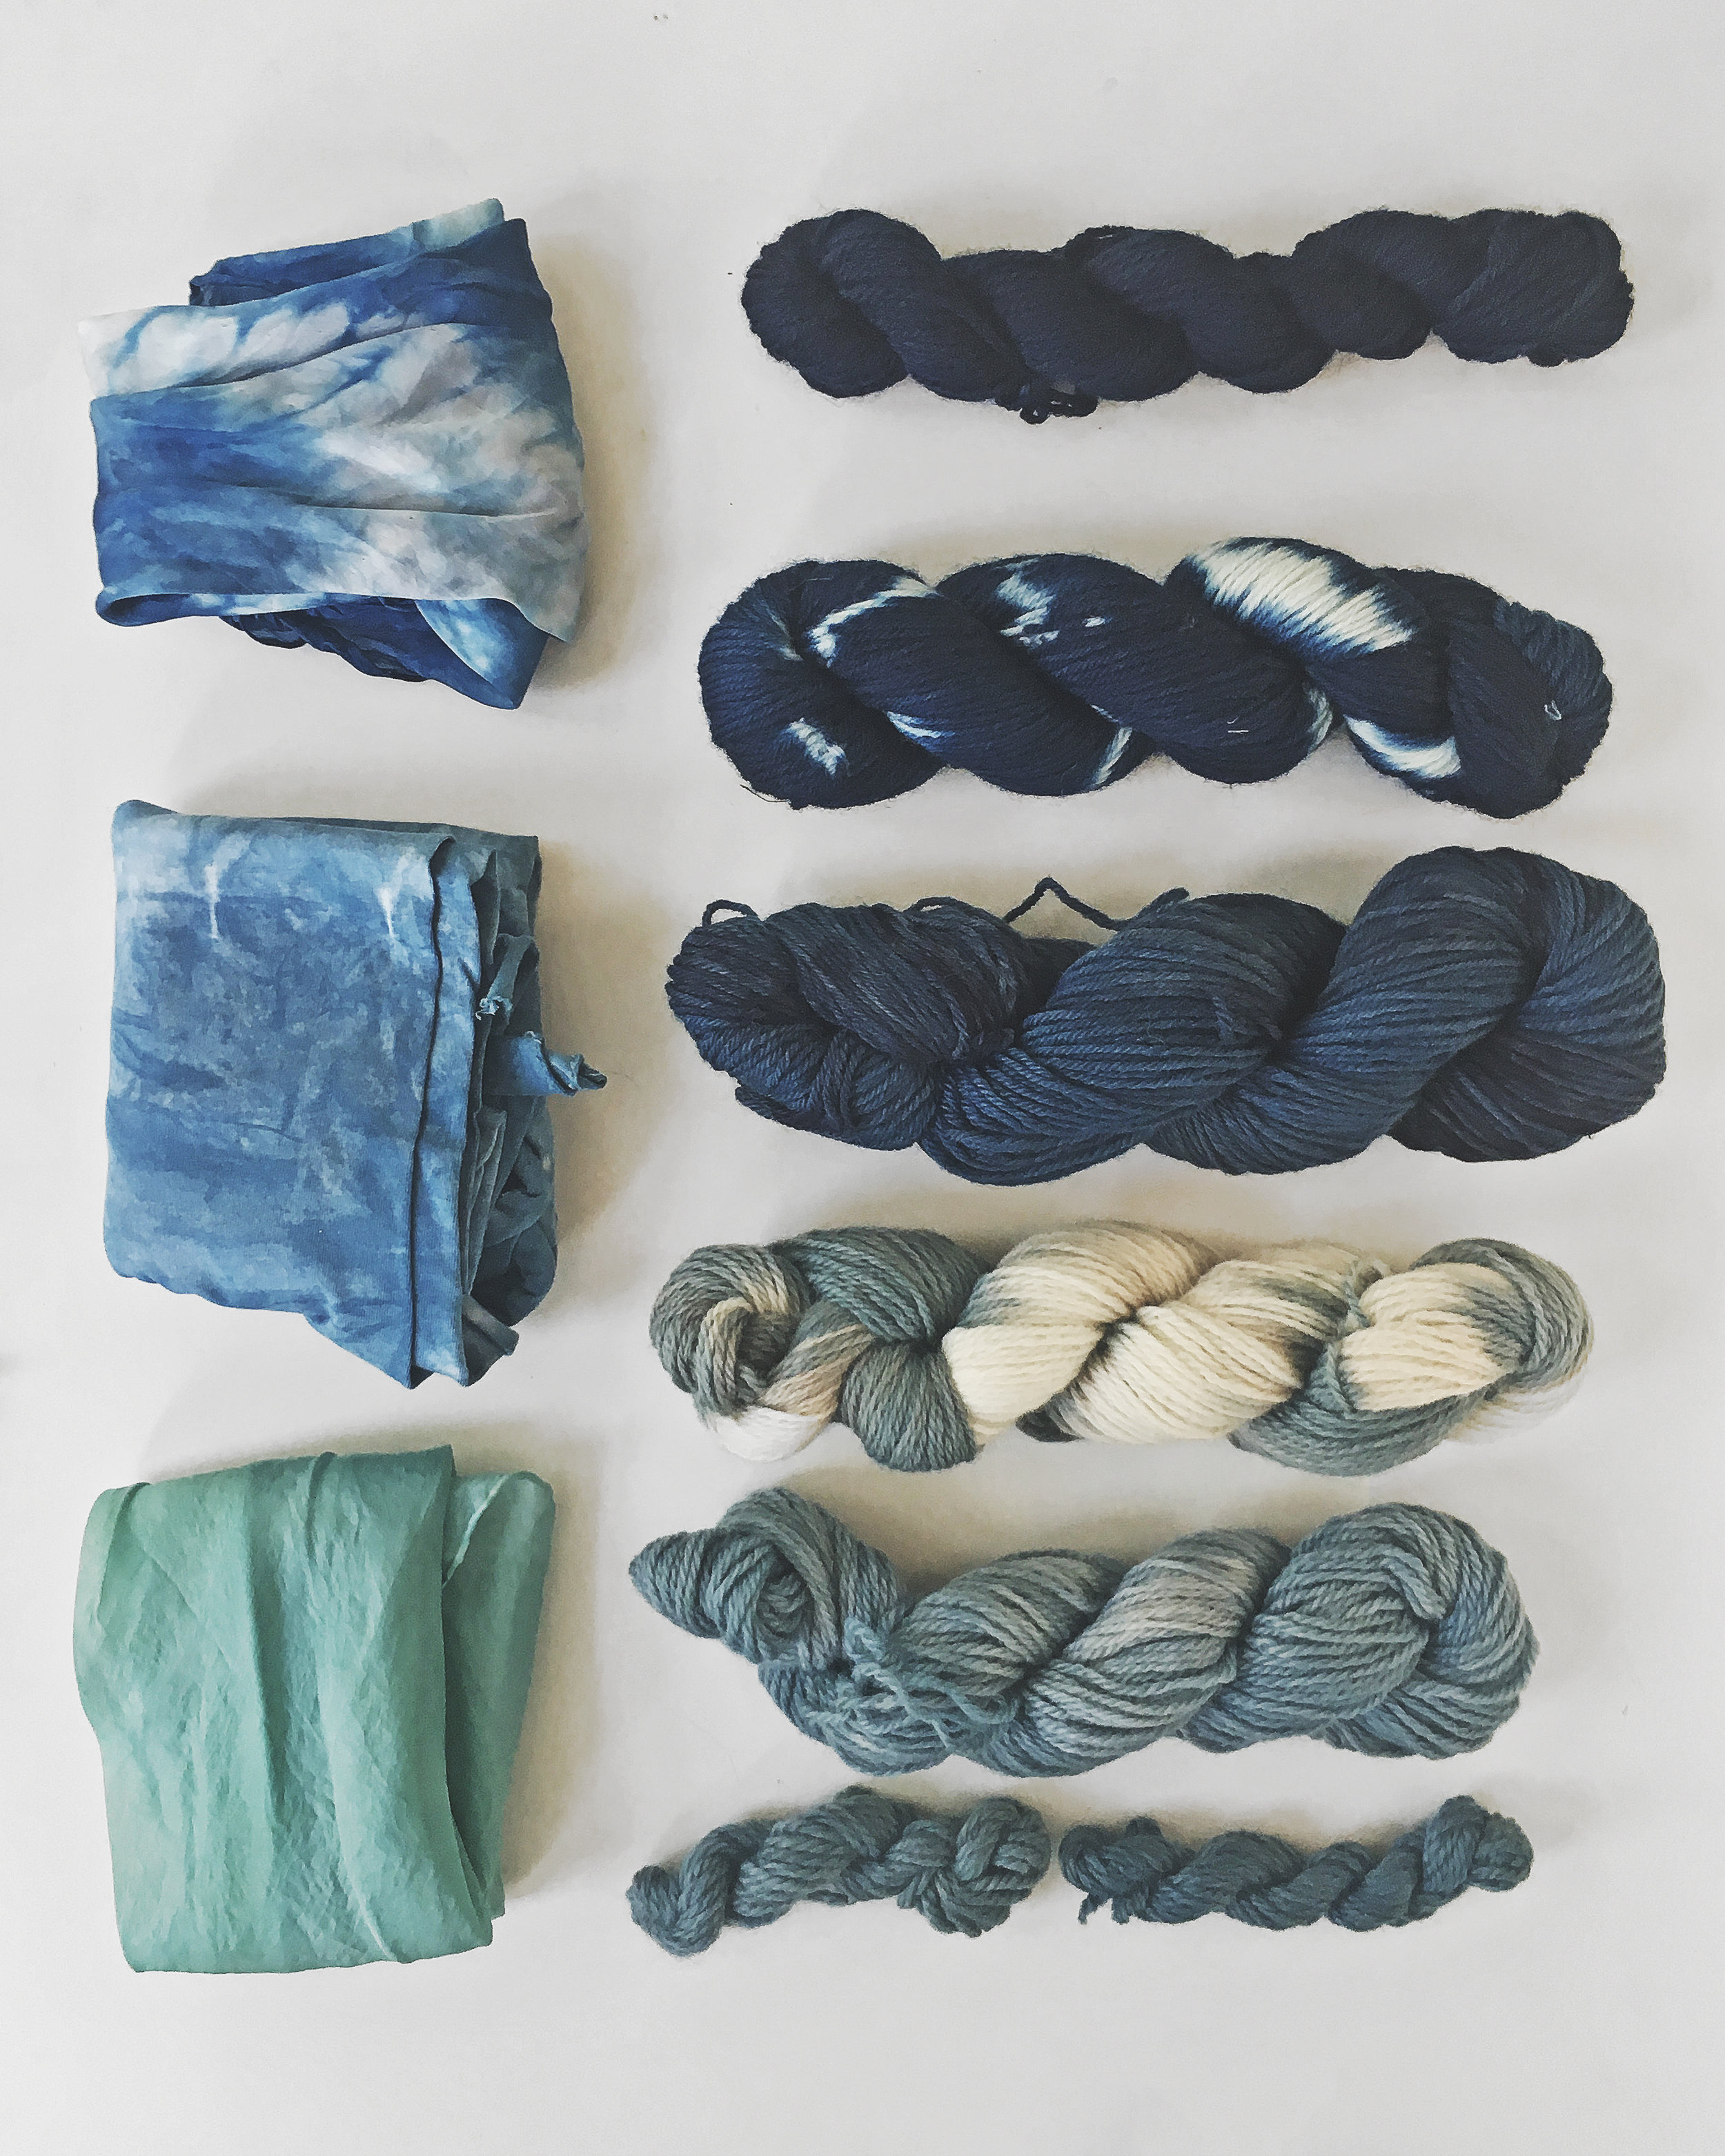 Woad and indigo dye on wool and silk, used fresh leaves and plant extracts. Read more about the recipes at www.kaliko.co